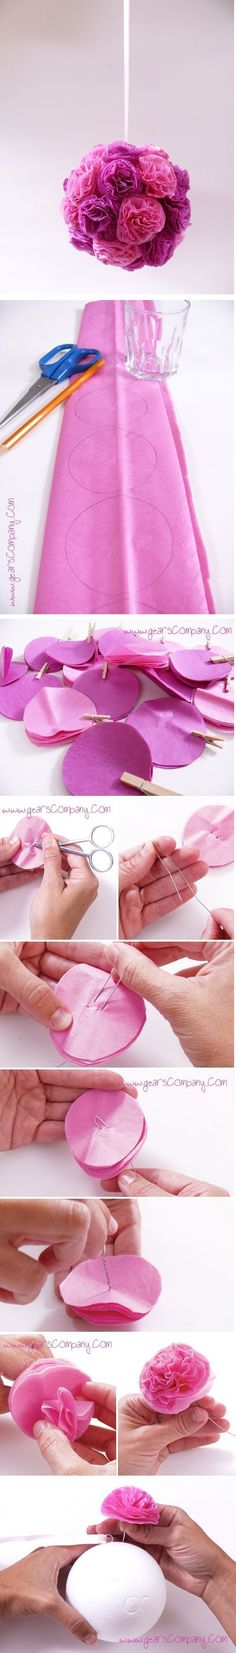 10 Amazing Ideas For Diy Home Decoration 10